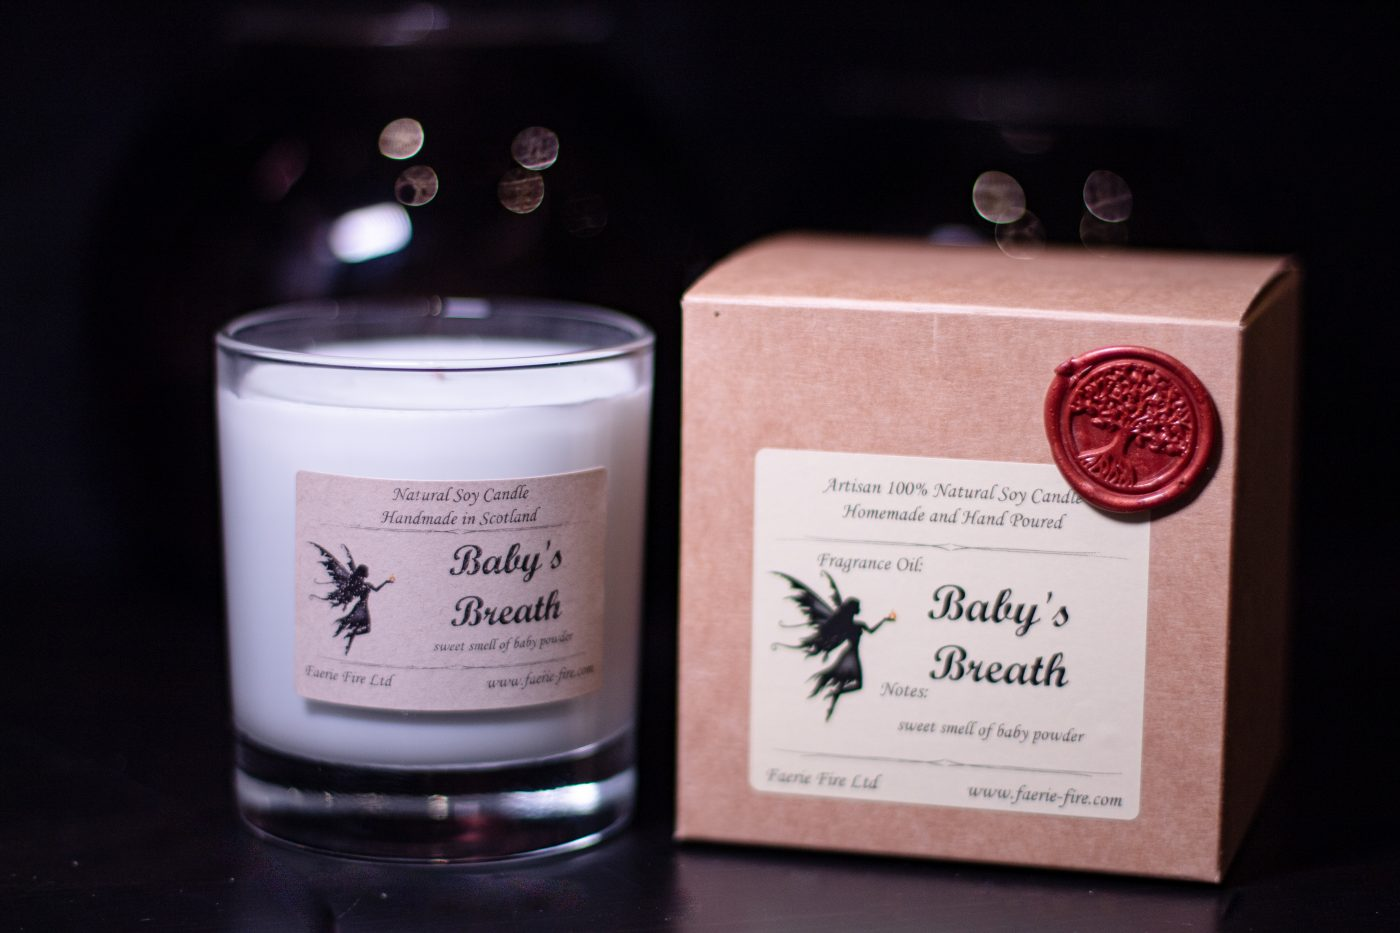 Image of very pale blue baby powder fragranced jar candle with a brown kraft box on a table with a dark background